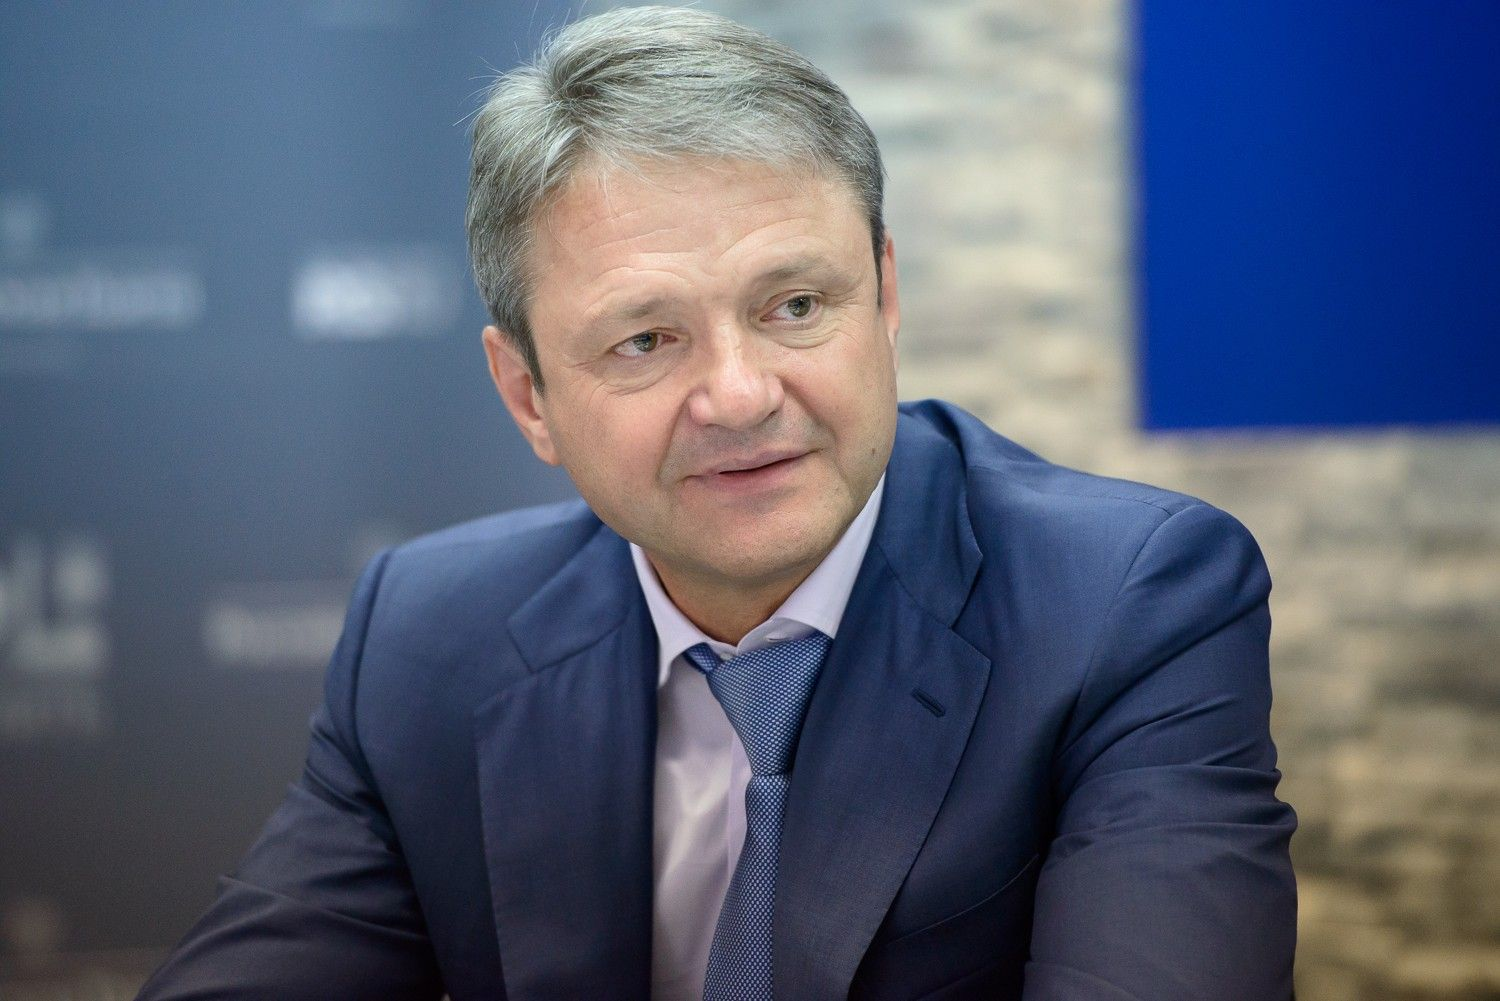 Tkachev's name was banned from entering the EU in mid-2014 / Photo from mcx.ru